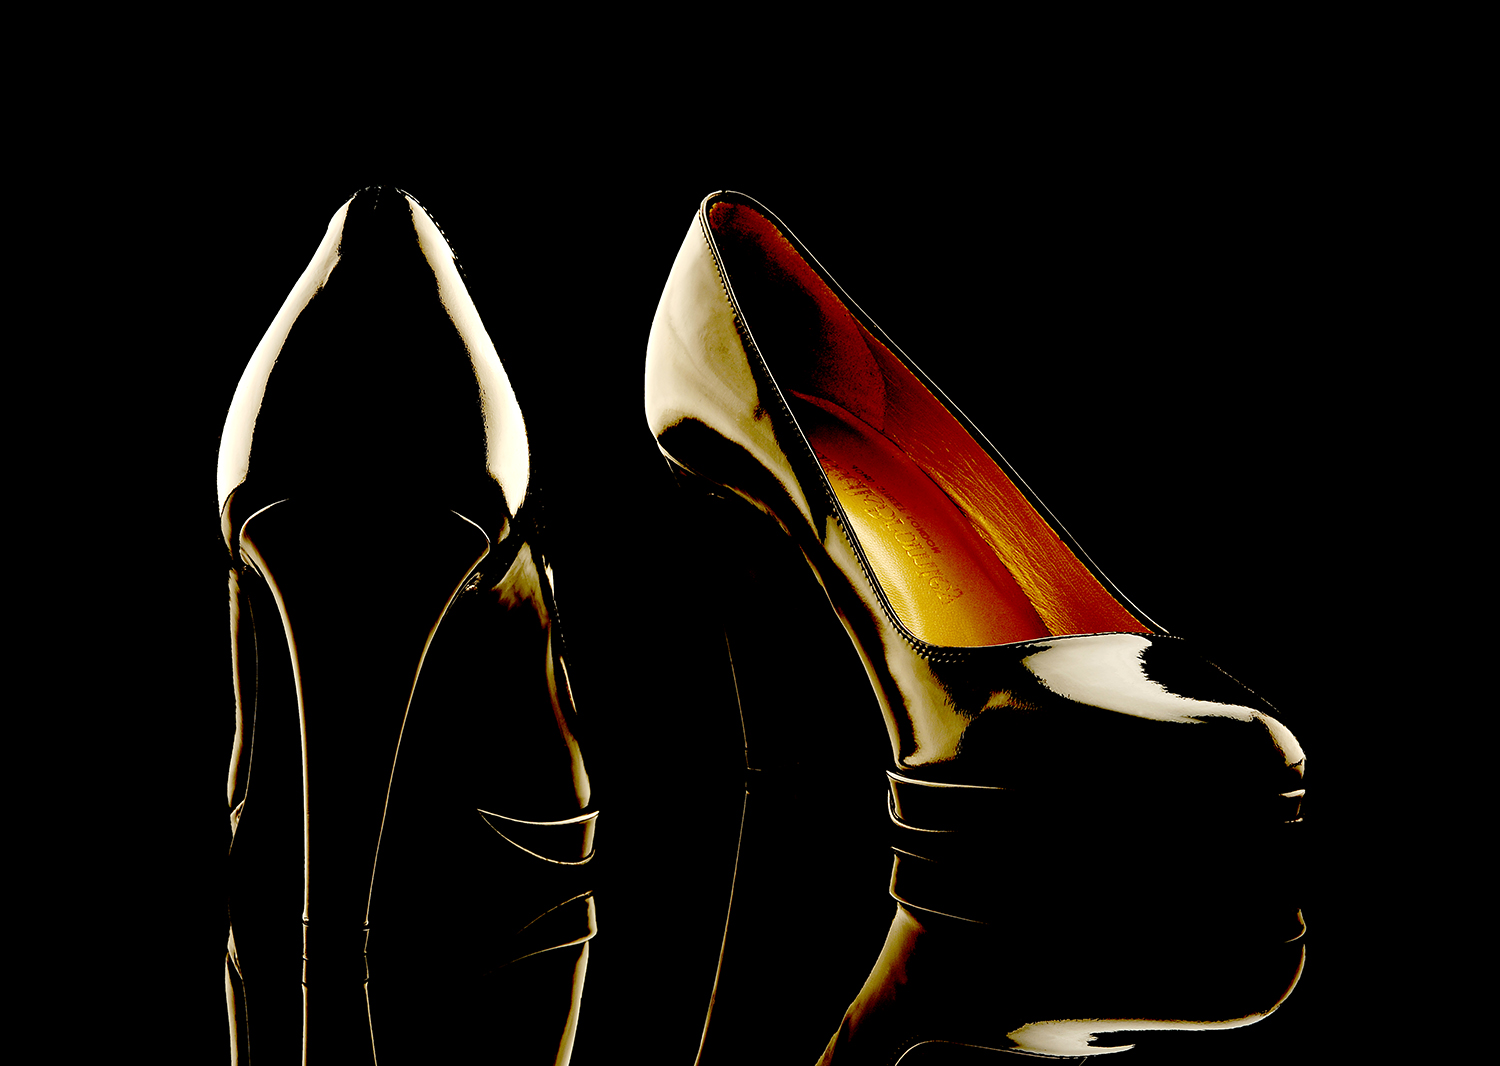 Clothing & Accessories-Shoes.jpg